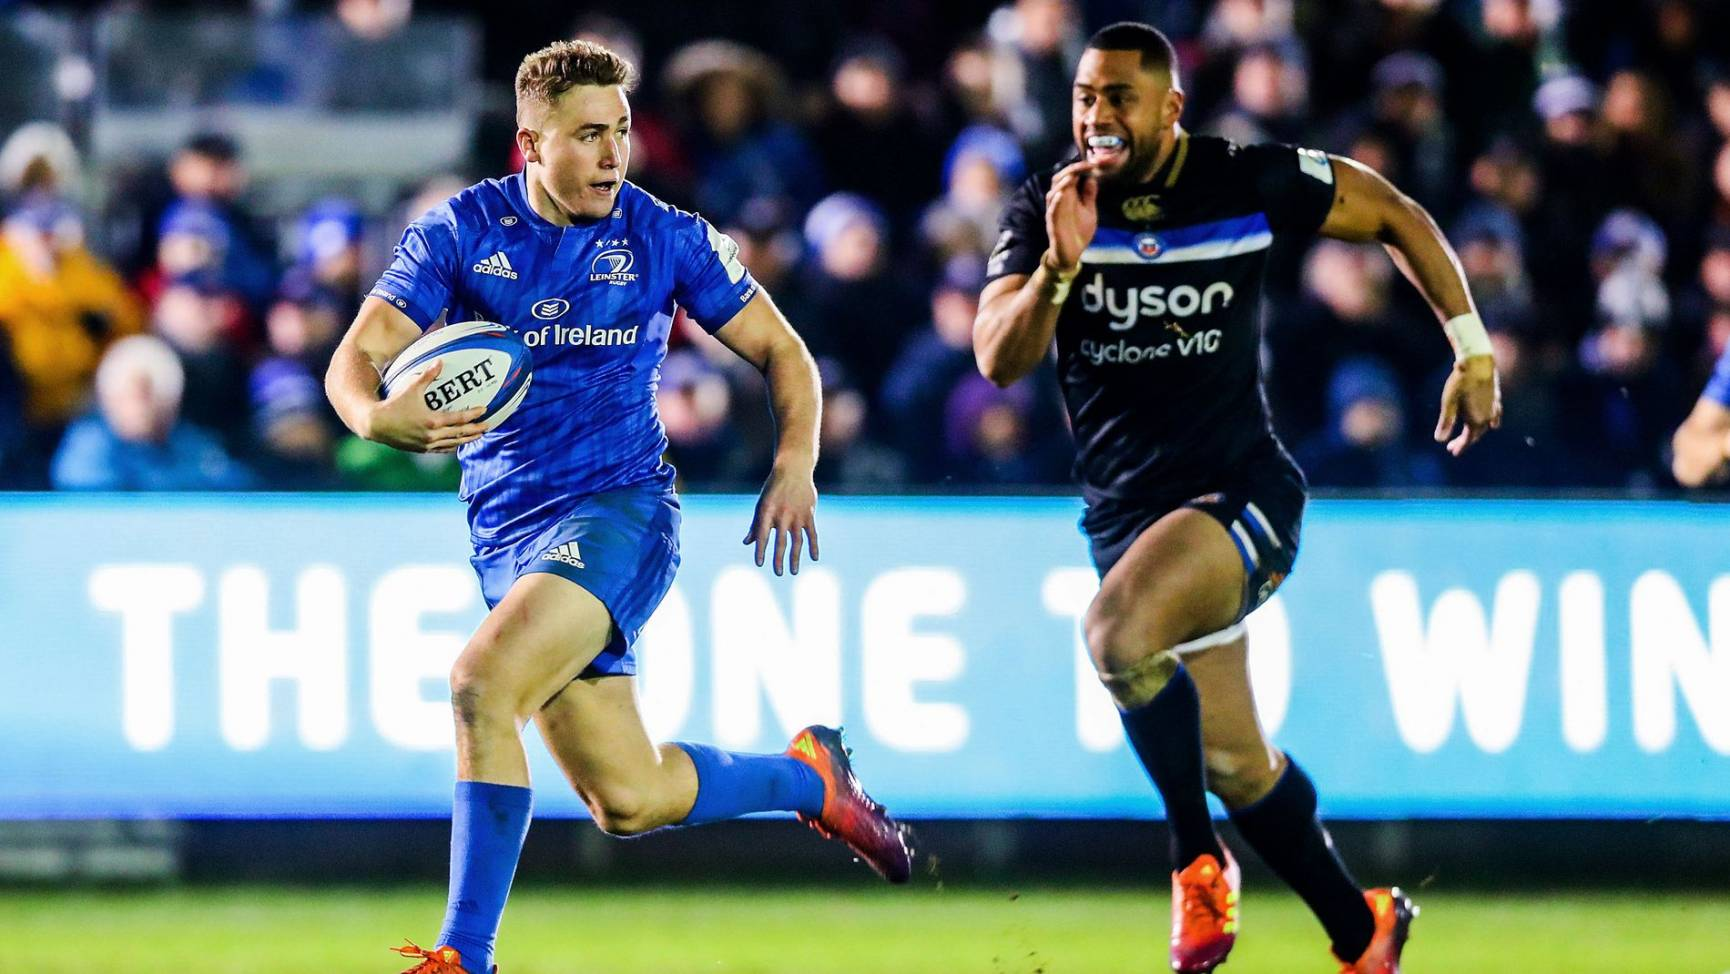 Larmour Try Leads Leinster To Four Hard-Earned Points